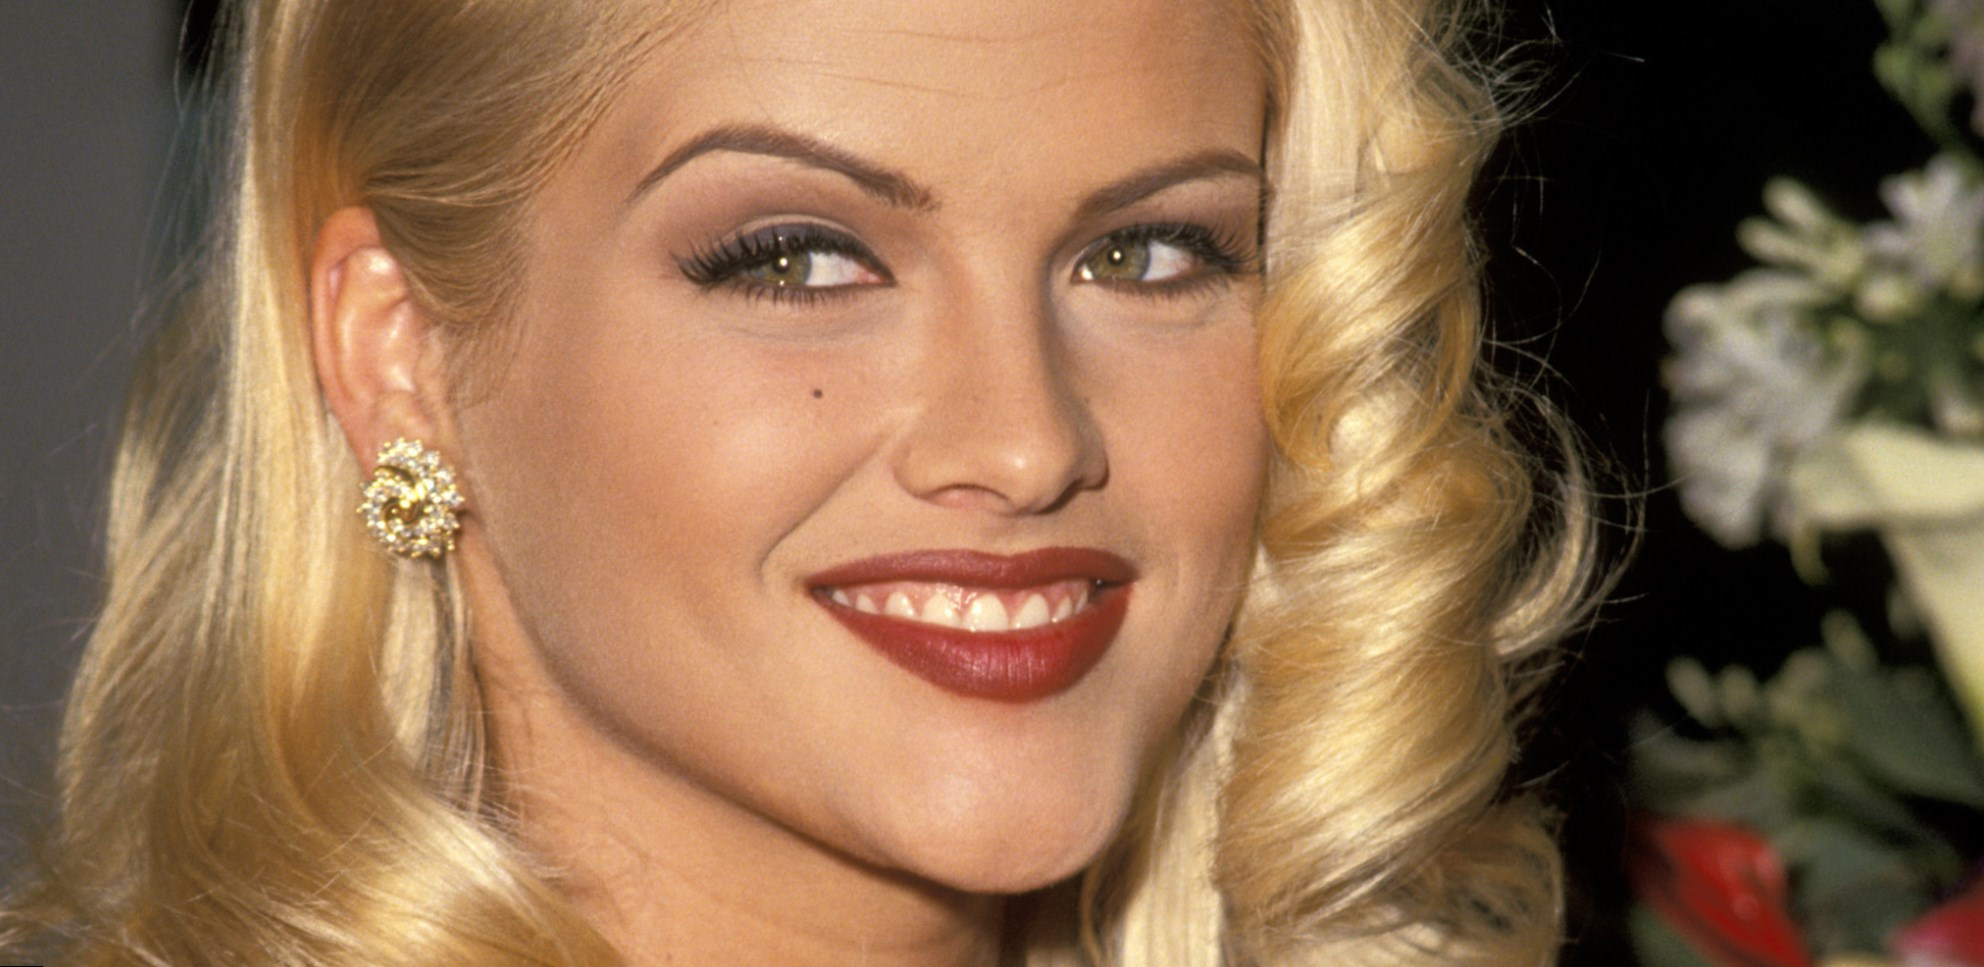 anna nicole smith википедияanna nicole smith death, anna nicole smith daughter, anna nicole smith husband, anna nicole smith son, anna nicole smith wedding, anna nicole smith quotes, anna nicole smith фильмы, anna nicole smith photography, anna nicole smith википедия, anna nicole smith interview, anna nicole smith dead, anna nicole smith clown, anna nicole smith movies online, anna nicole smith wikipedia, anna nicole smith donald trump, anna nicole smith ghost, anna nicole smith show season 3, anna nicole smith and her daughter, anna nicole smith d, anna nicole smith assets